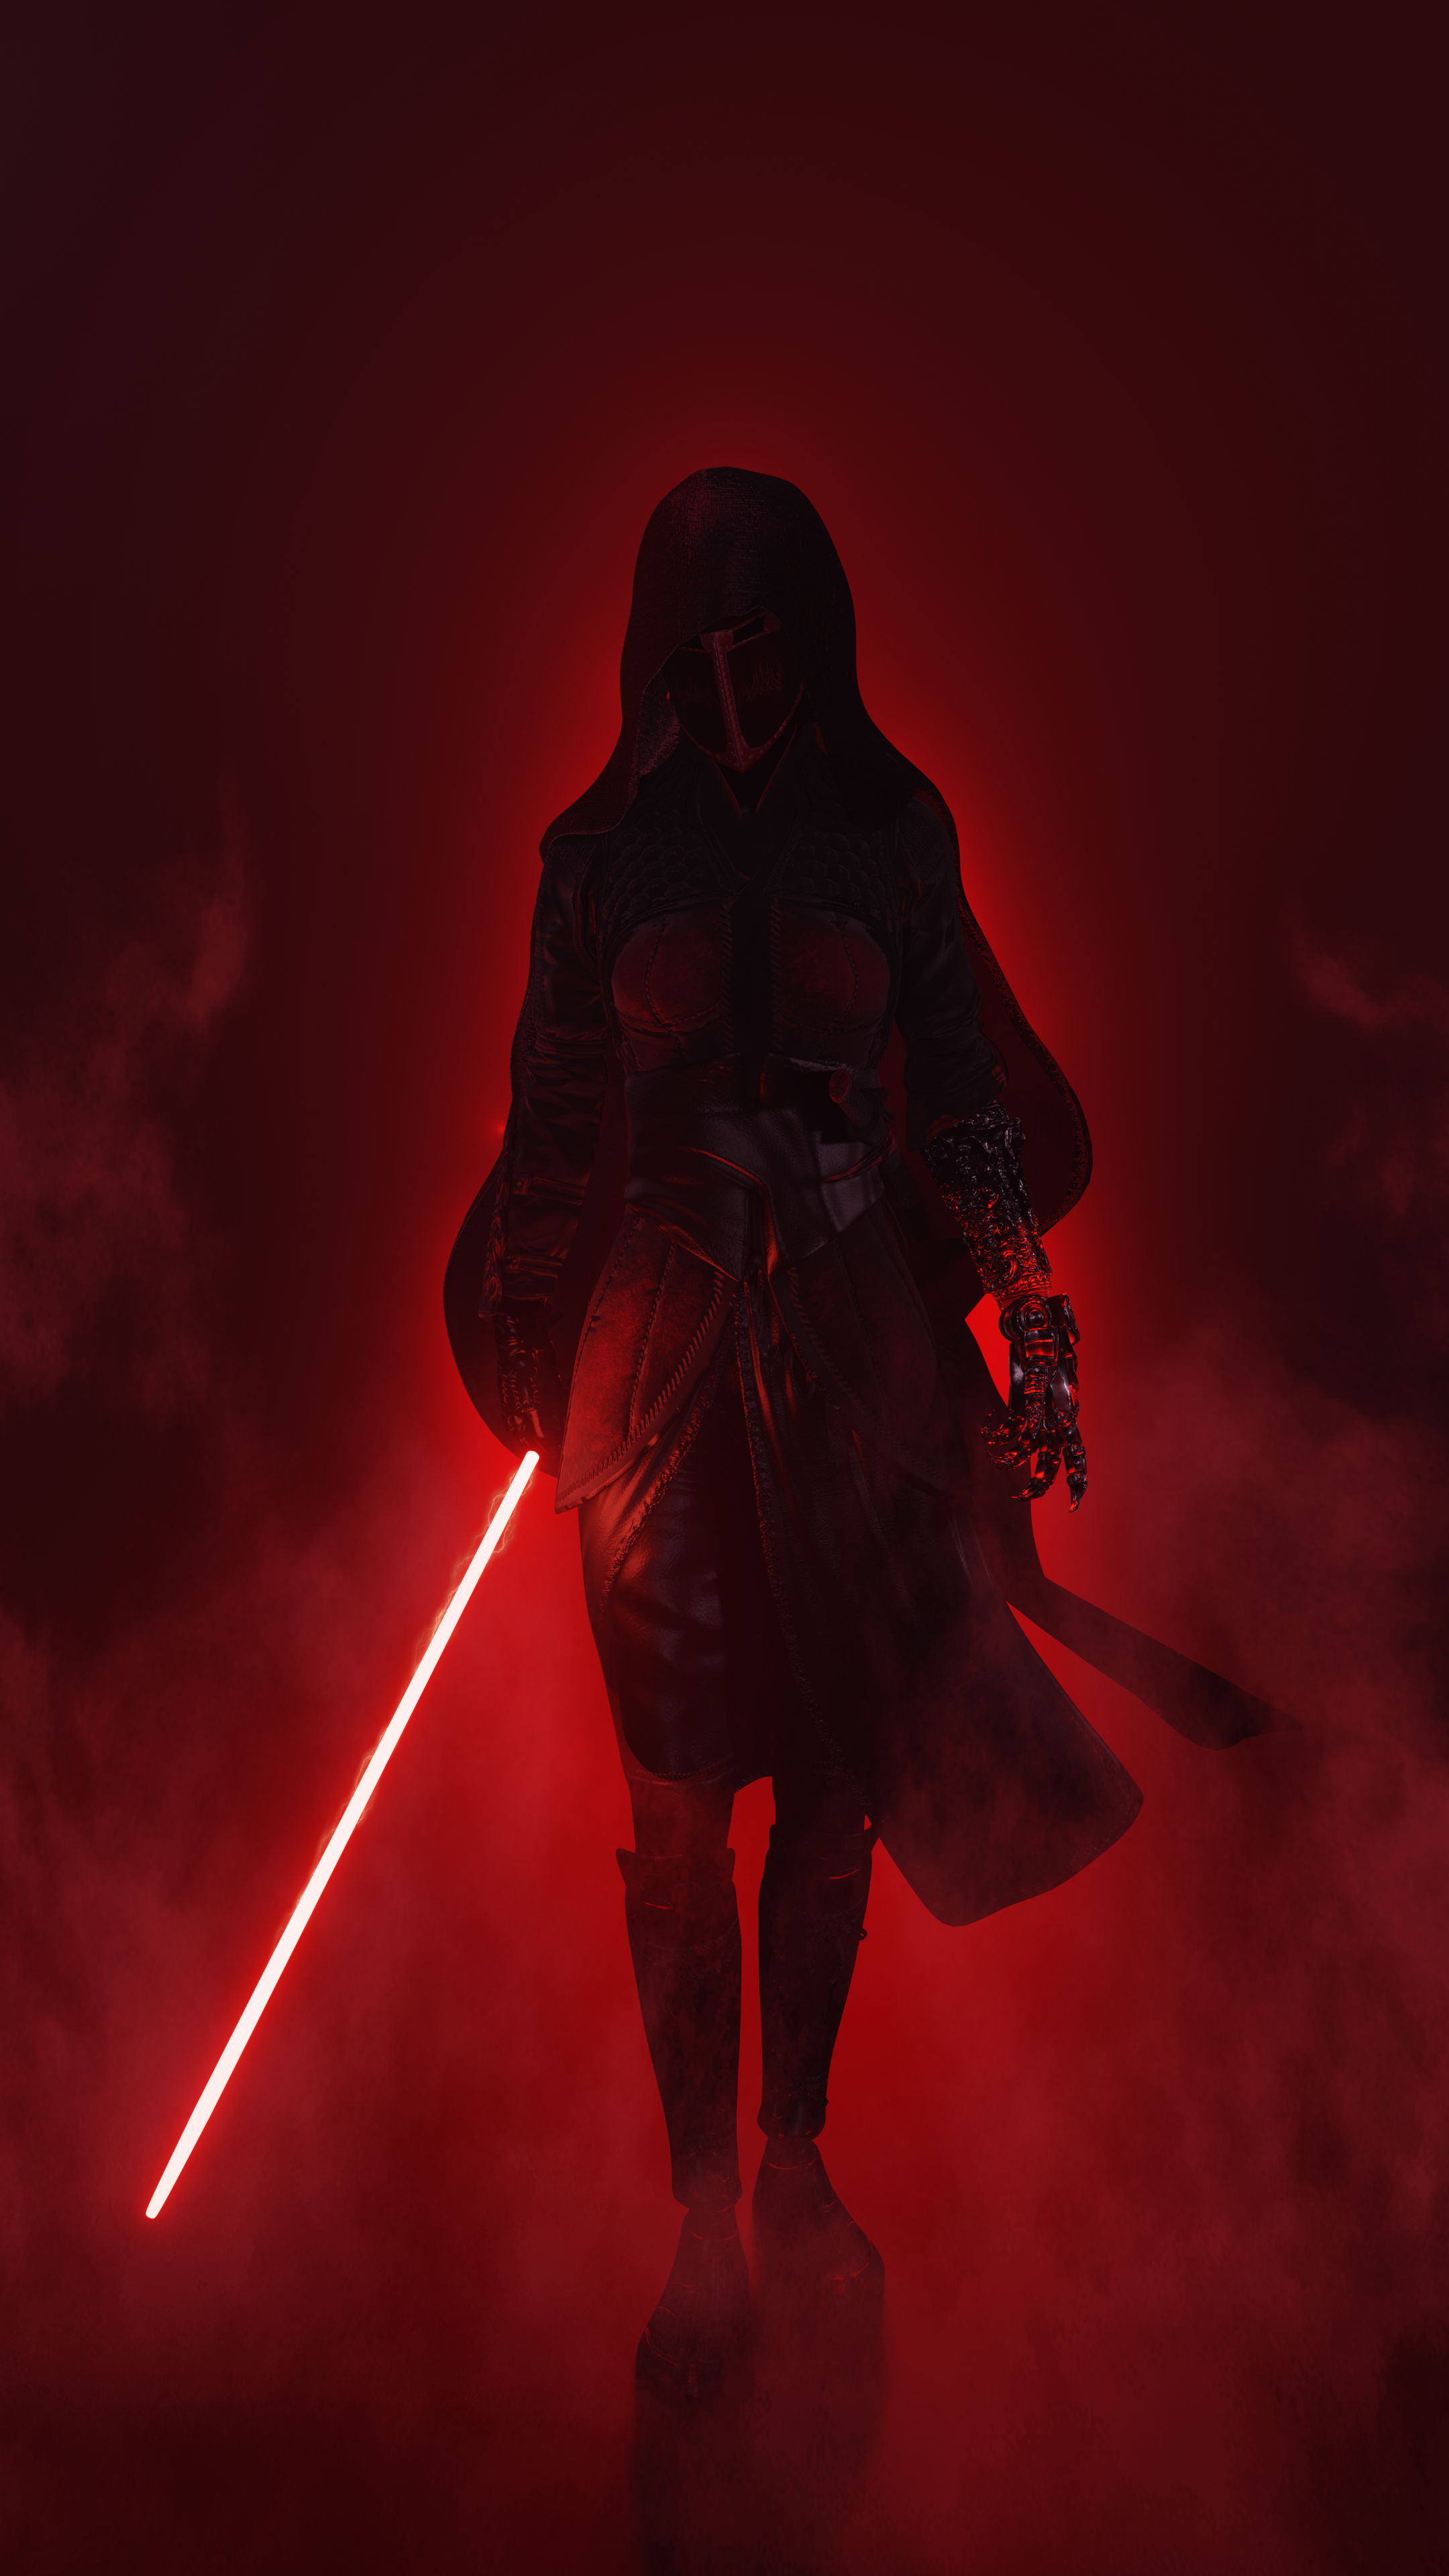 Sith Inquisitor Eevee blend preview image 1